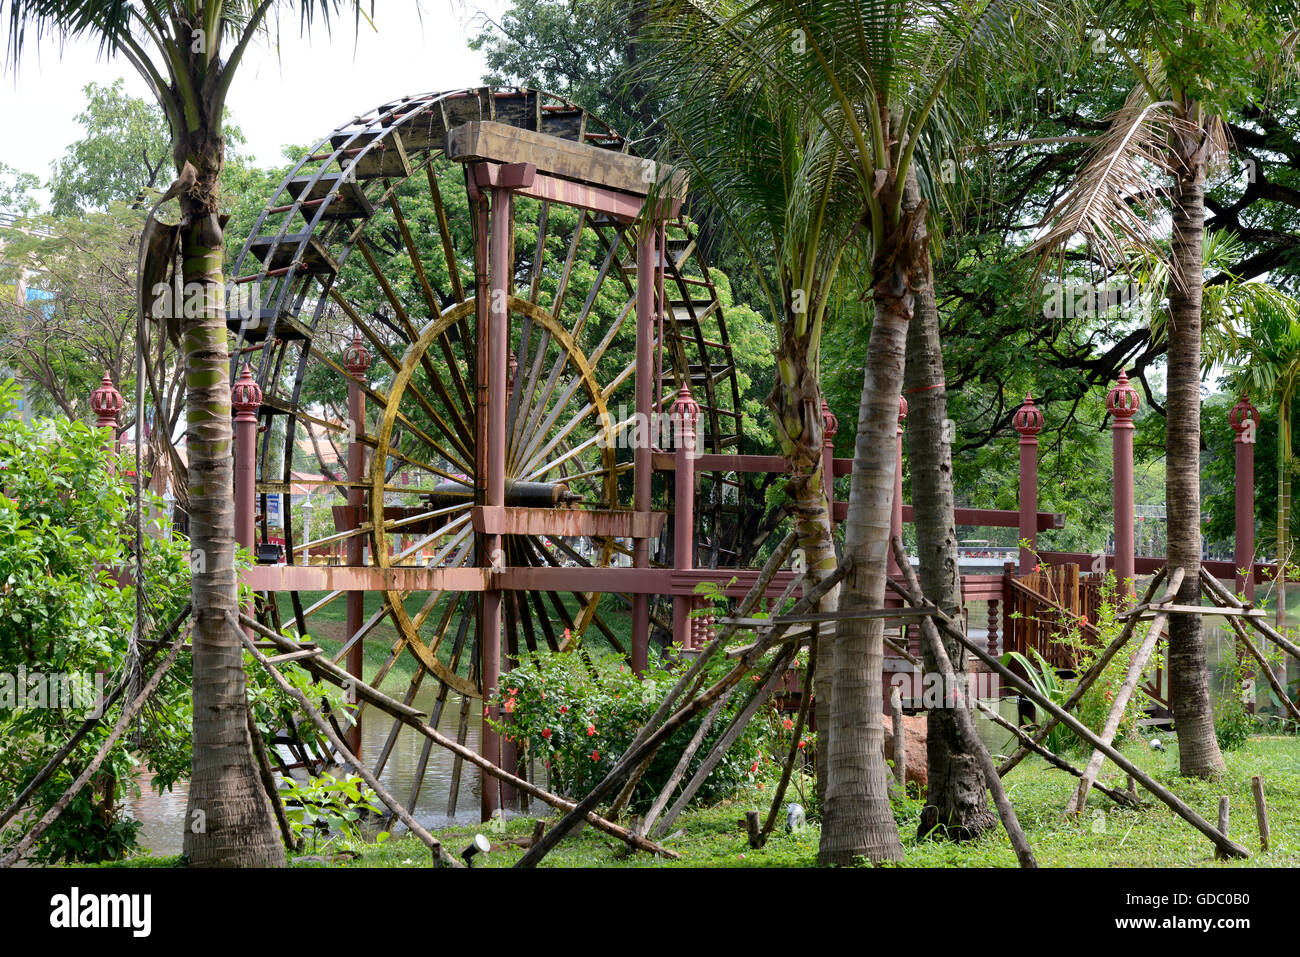 The old water mill in the City centre of Siem Riep neat the Ankro Wat Temples in the west of Cambodia. - Stock Image